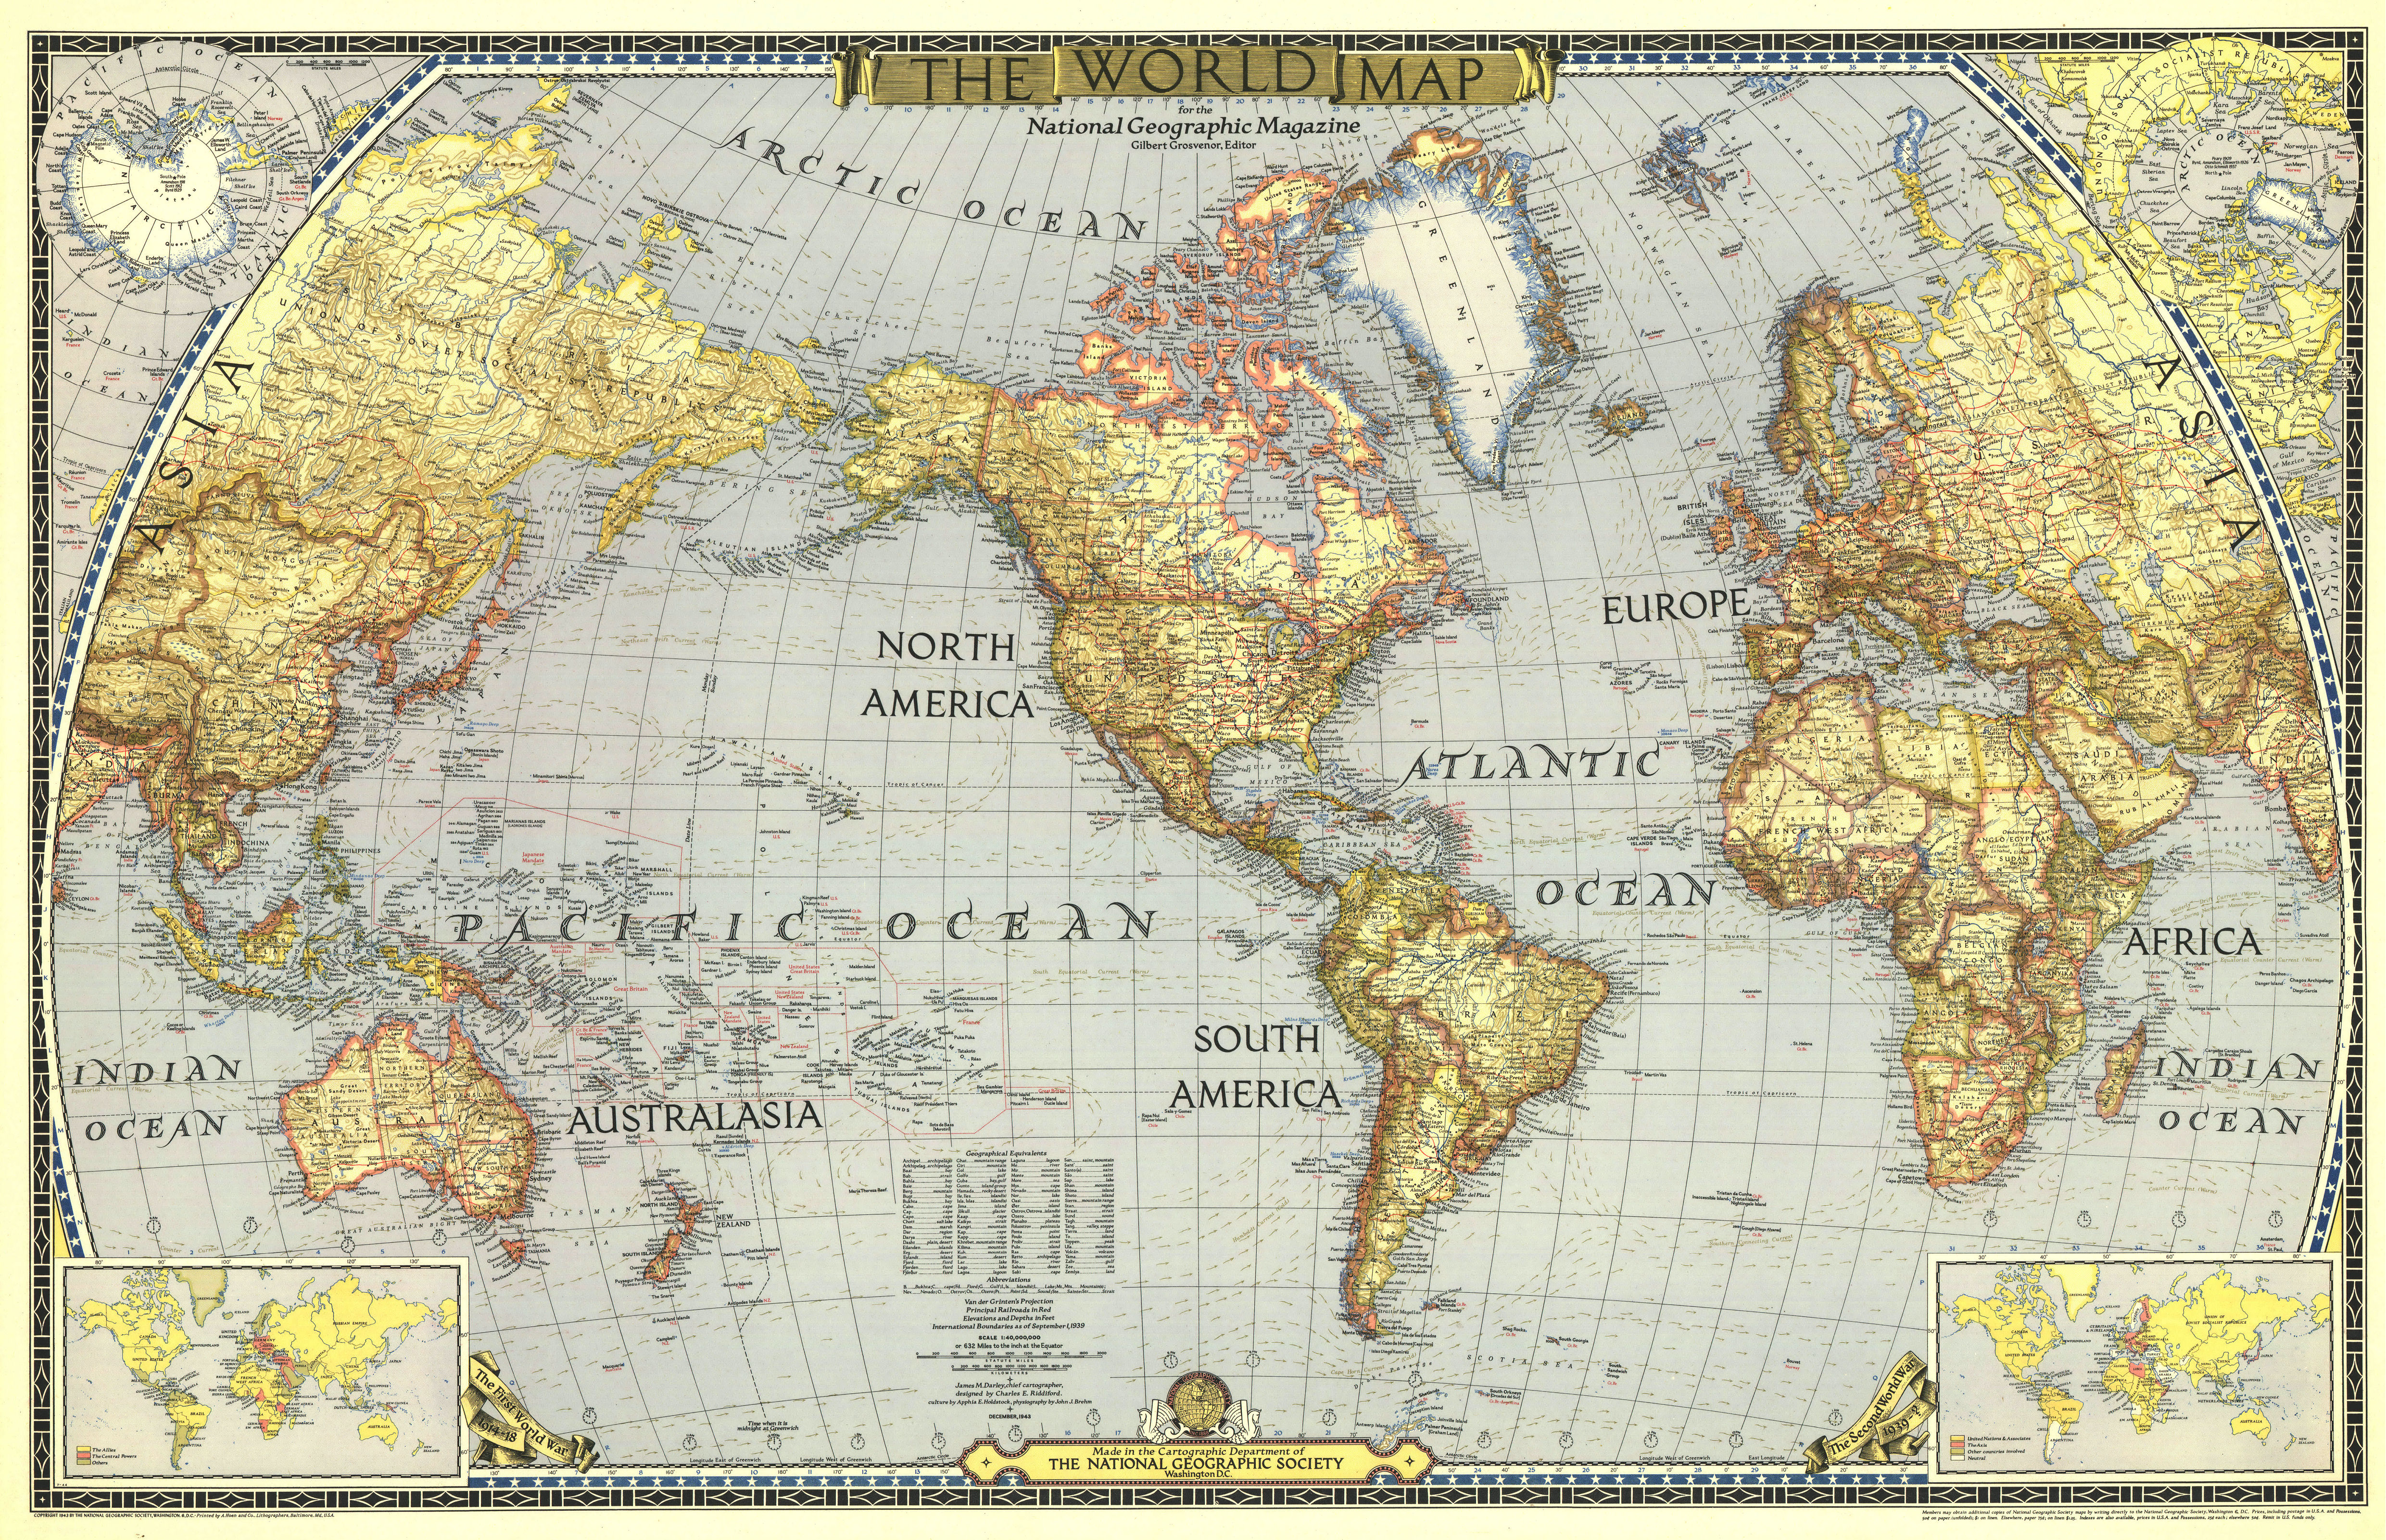 National geographic world map 1943 4961x3202 mapporn national geographic world map 1943 4961x3202 publicscrutiny Image collections